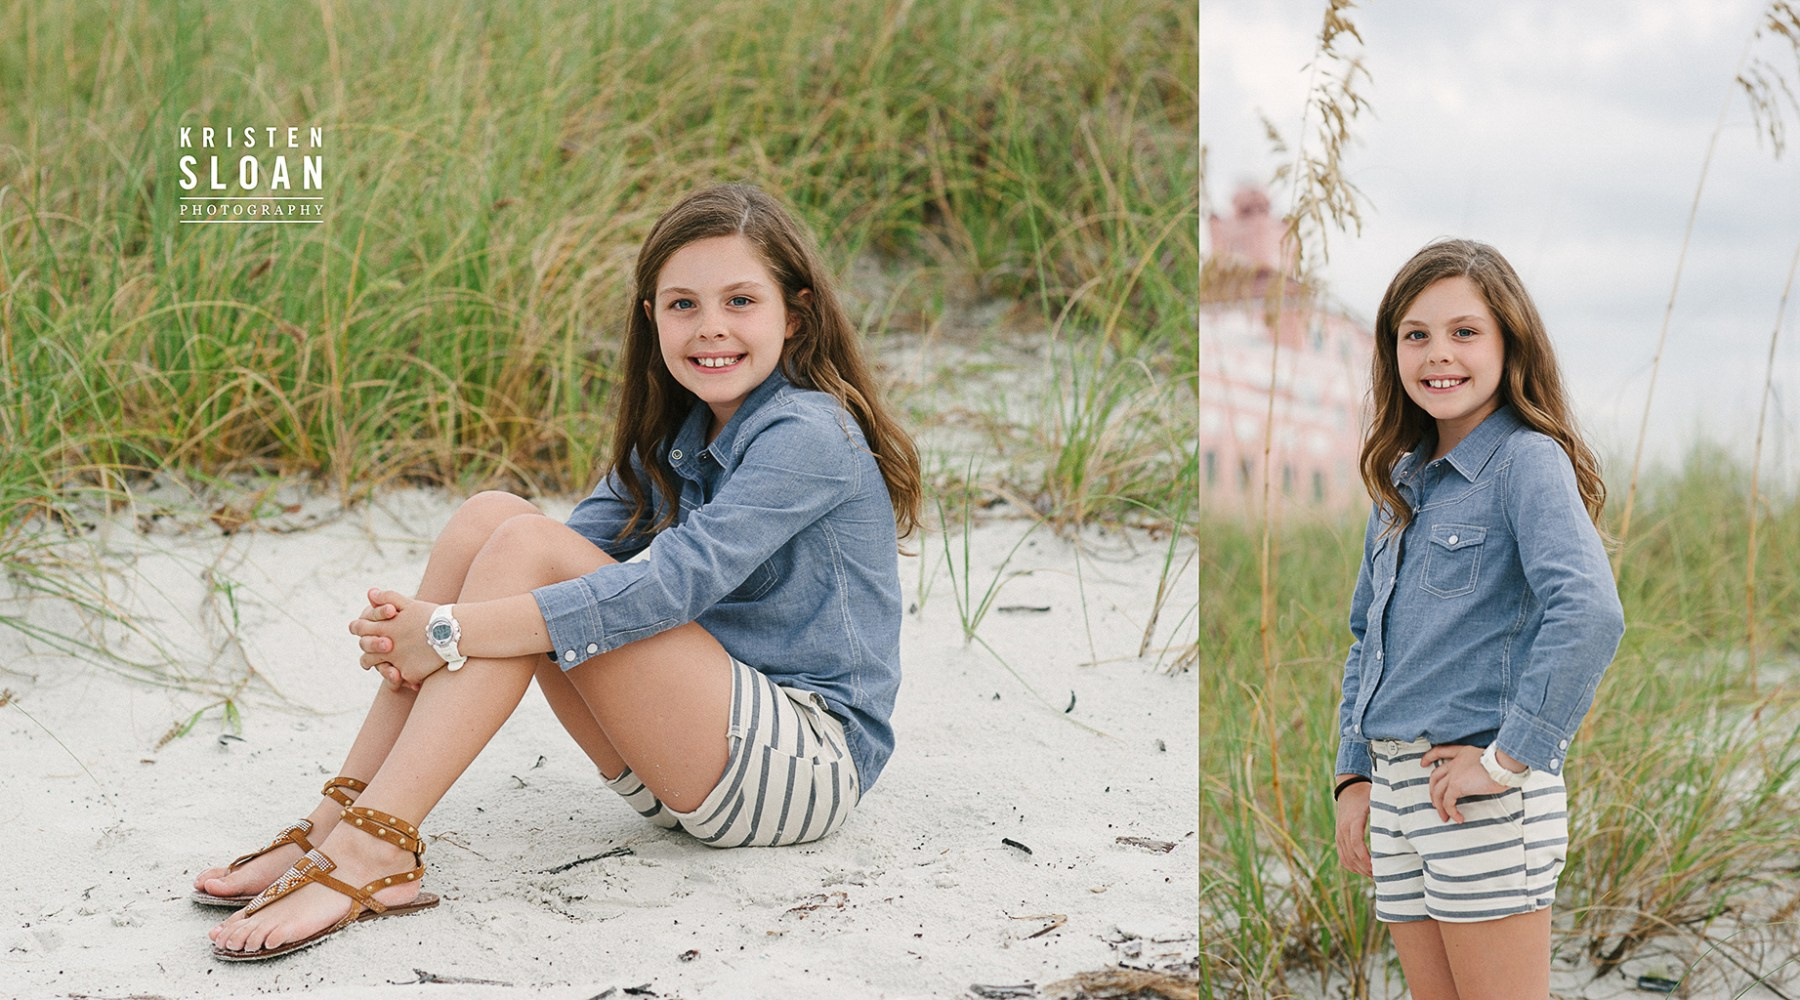 Loews Don Cesar Hotel Family Kids Beach Portrait Photos by Kristen Sloan Photography